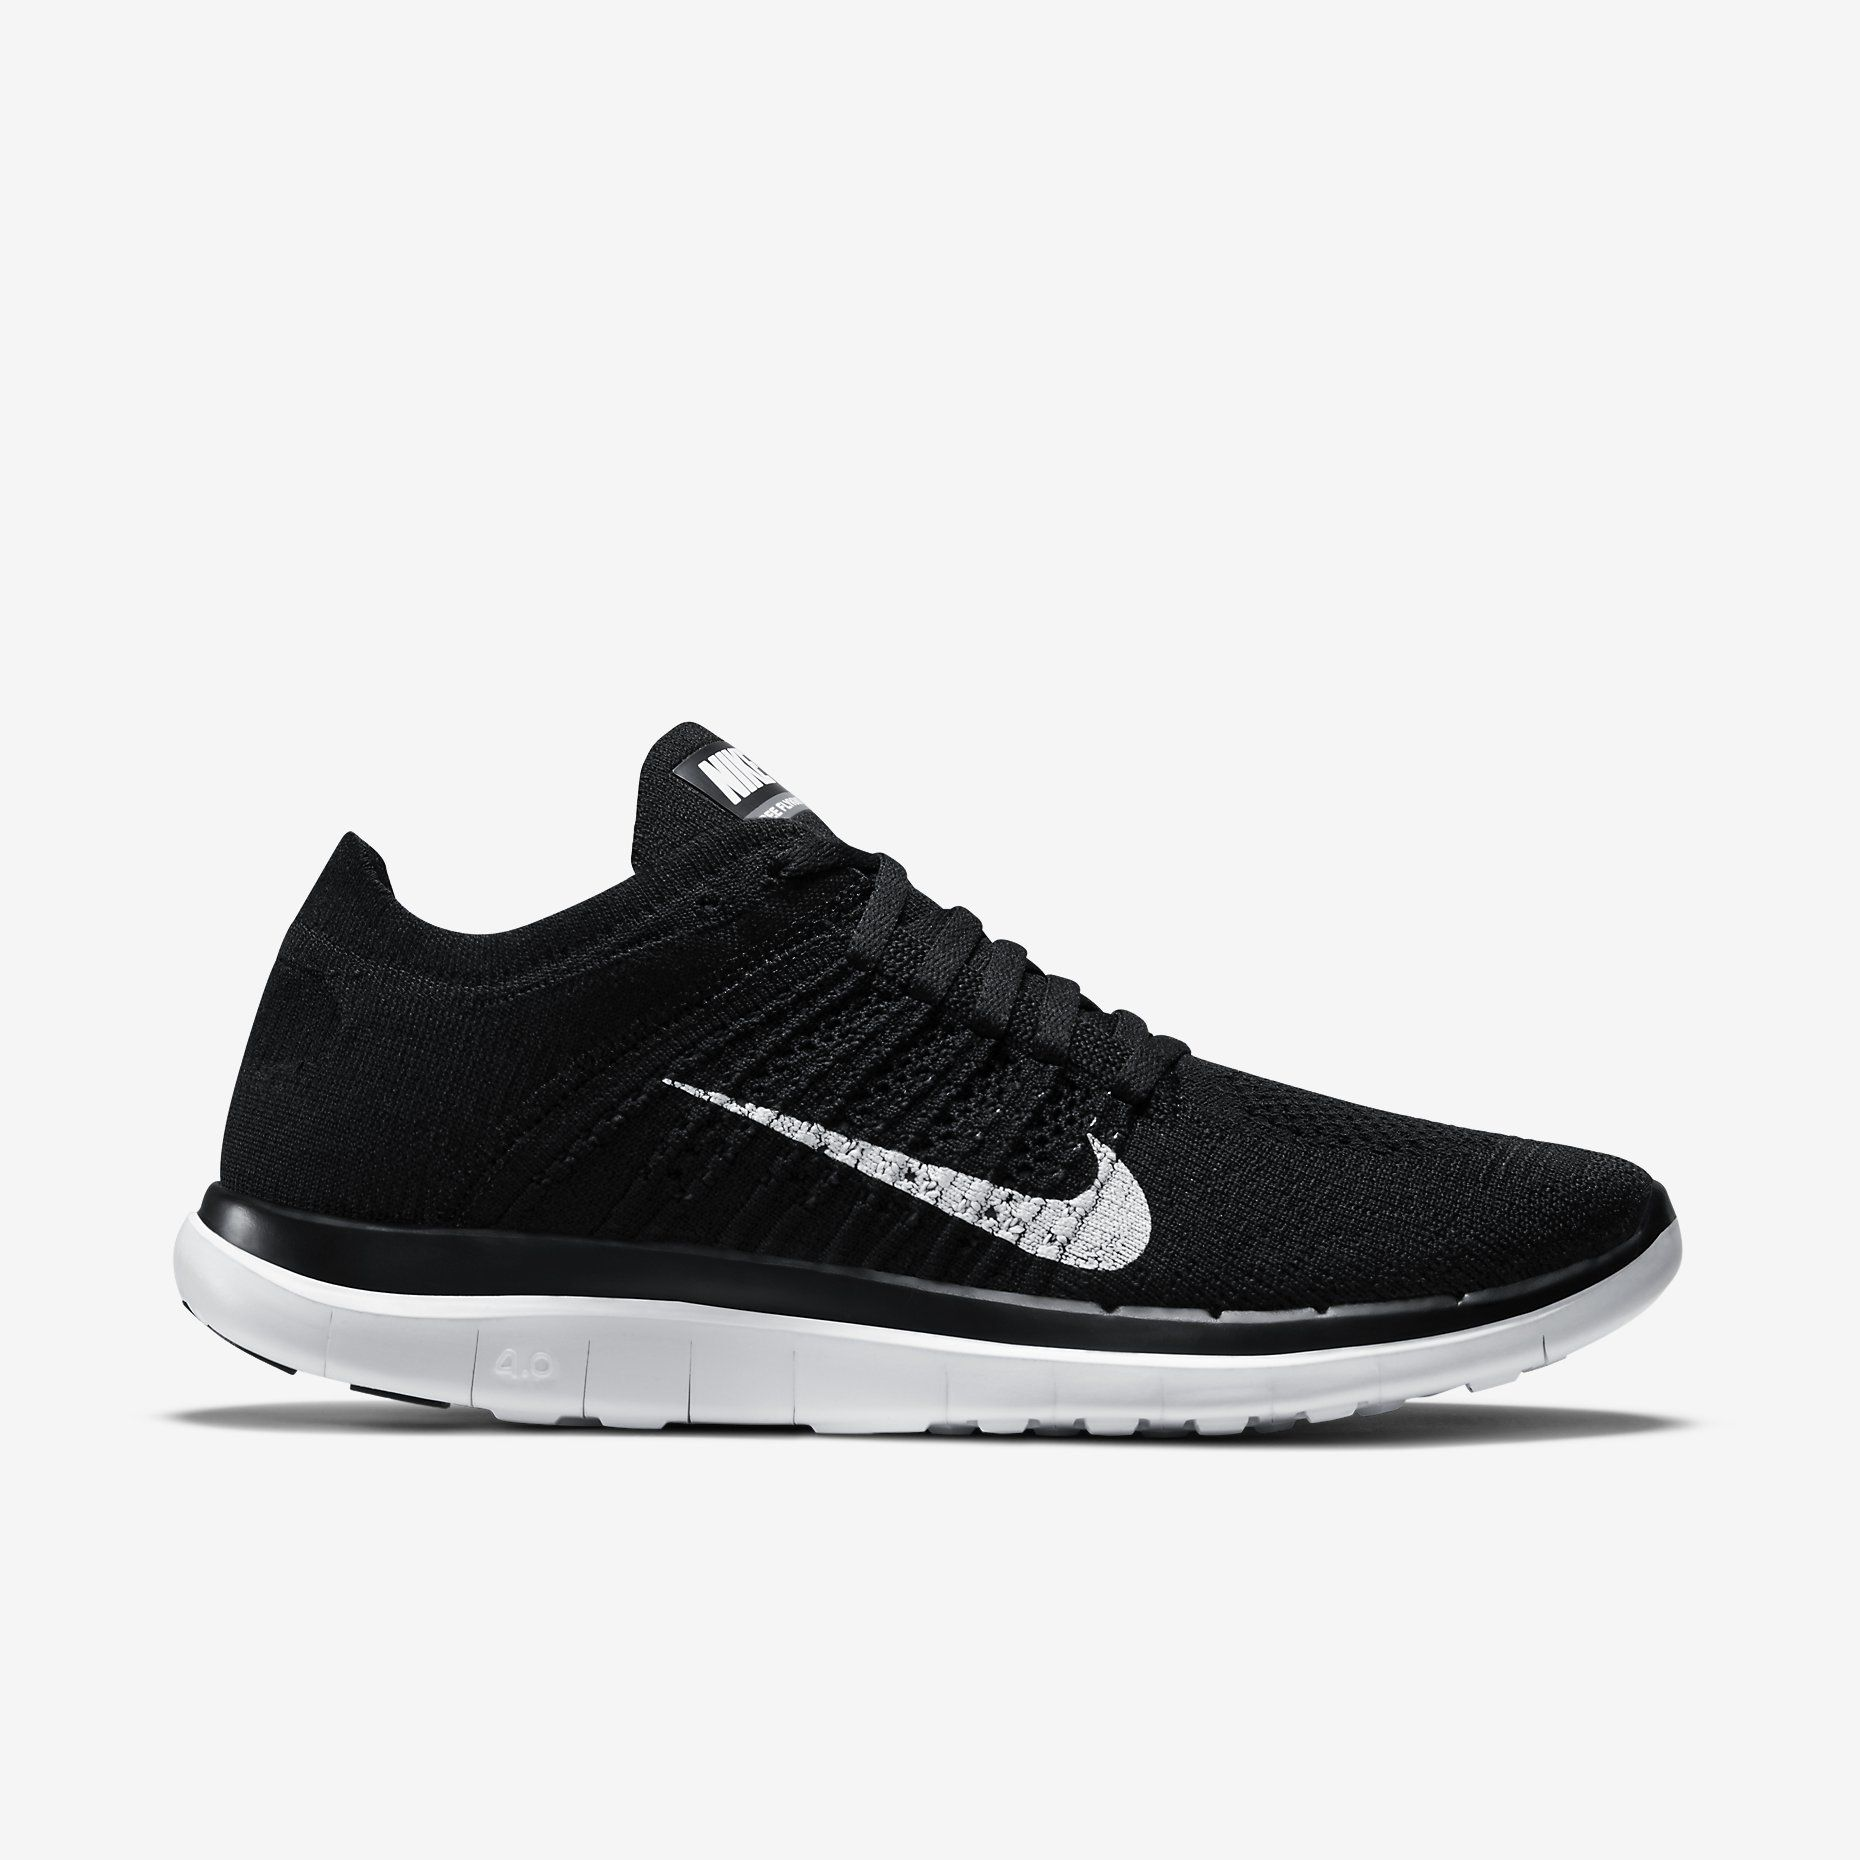 first rate 88ea3 7dd00 Nike Free 4.0 Flyknit Women s Running Shoe. Nike Store   Vegan Shoes    Vegan Running Shoes